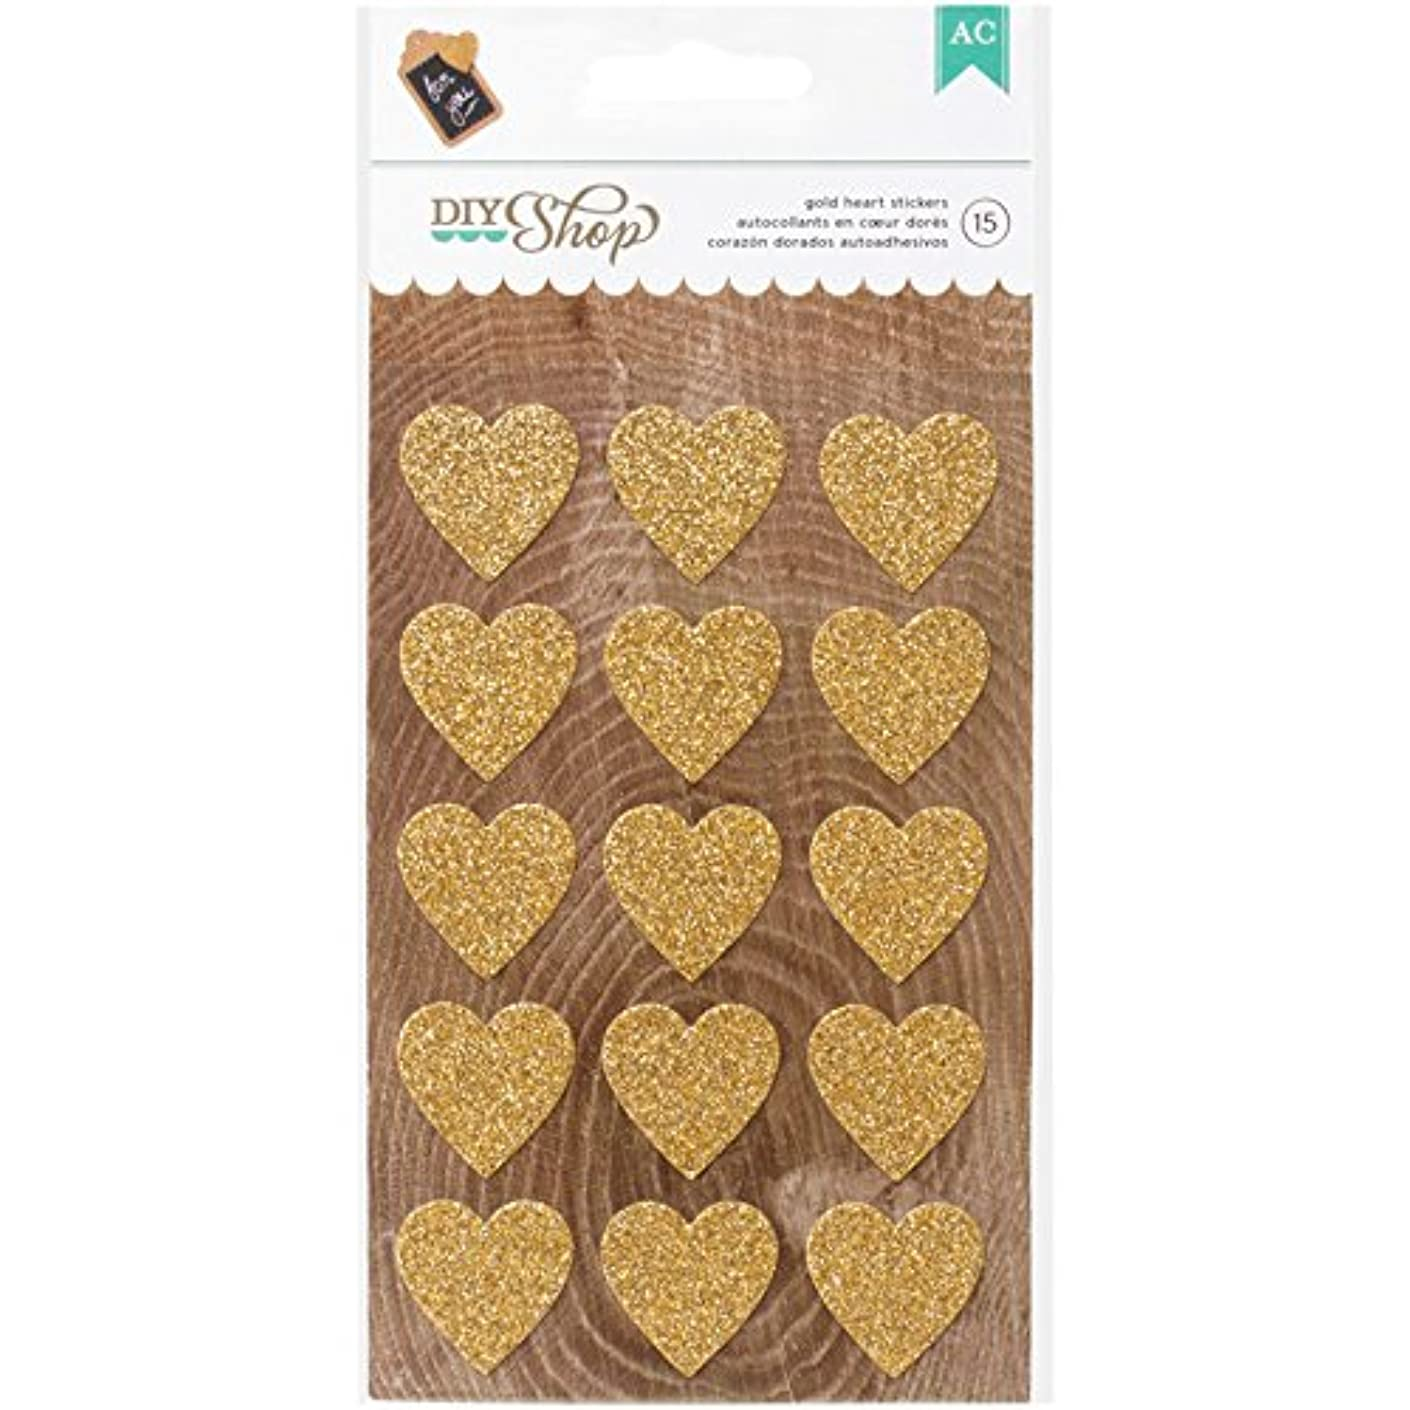 American Crafts DIY Shop 2 Hearts Glitter Stickers, Gold